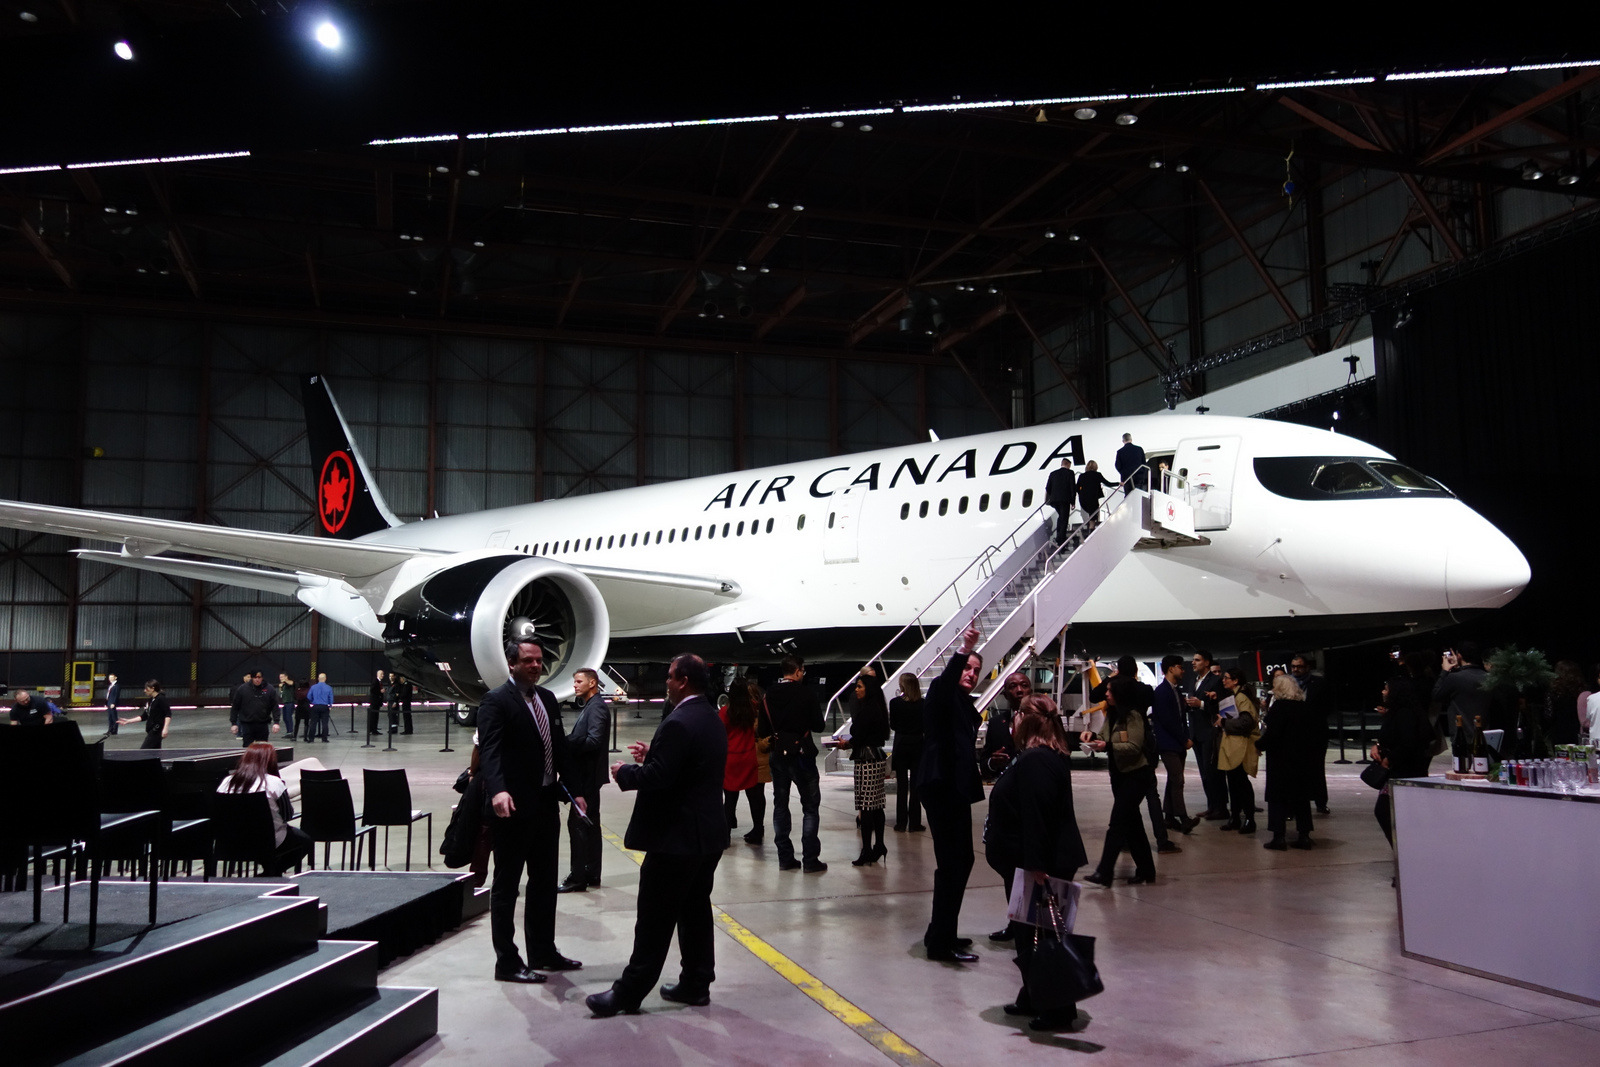 Air Canada unveils its new livery on a Boeing 787-8